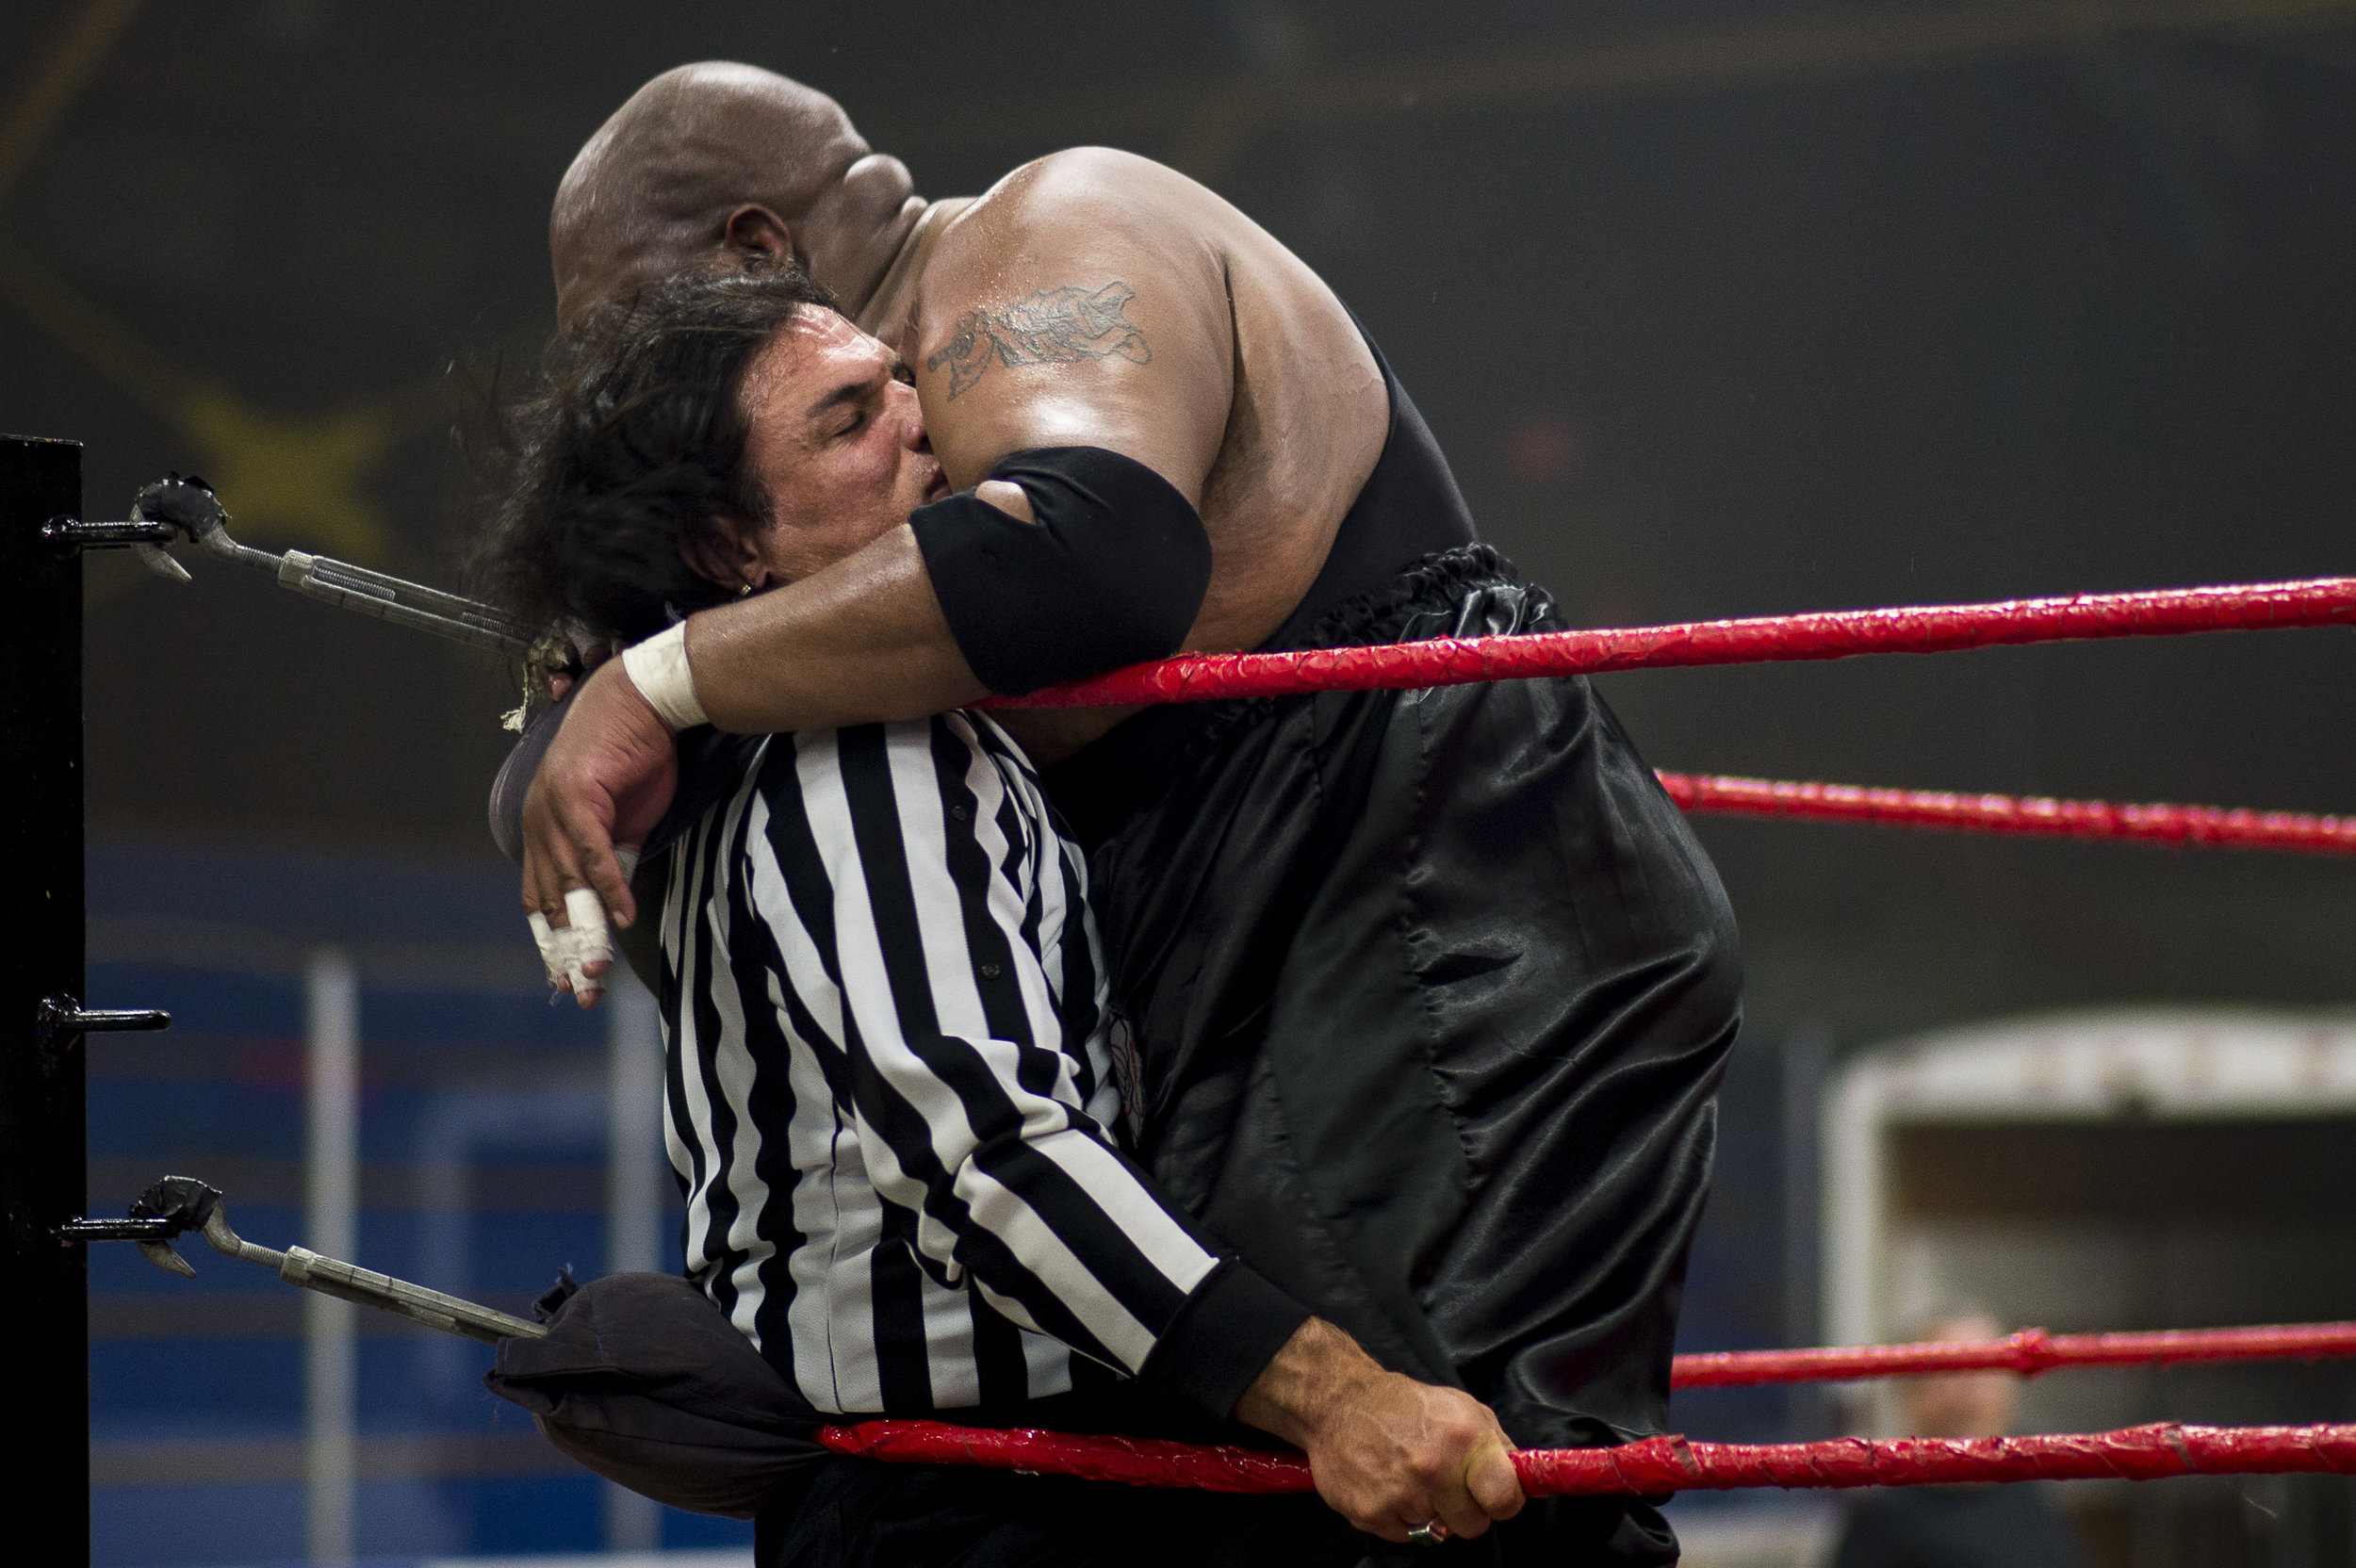 Suspended senator Patrick Brazeau is body slammed by Soa Amin during a local wrestling match where he was a special guest referee.